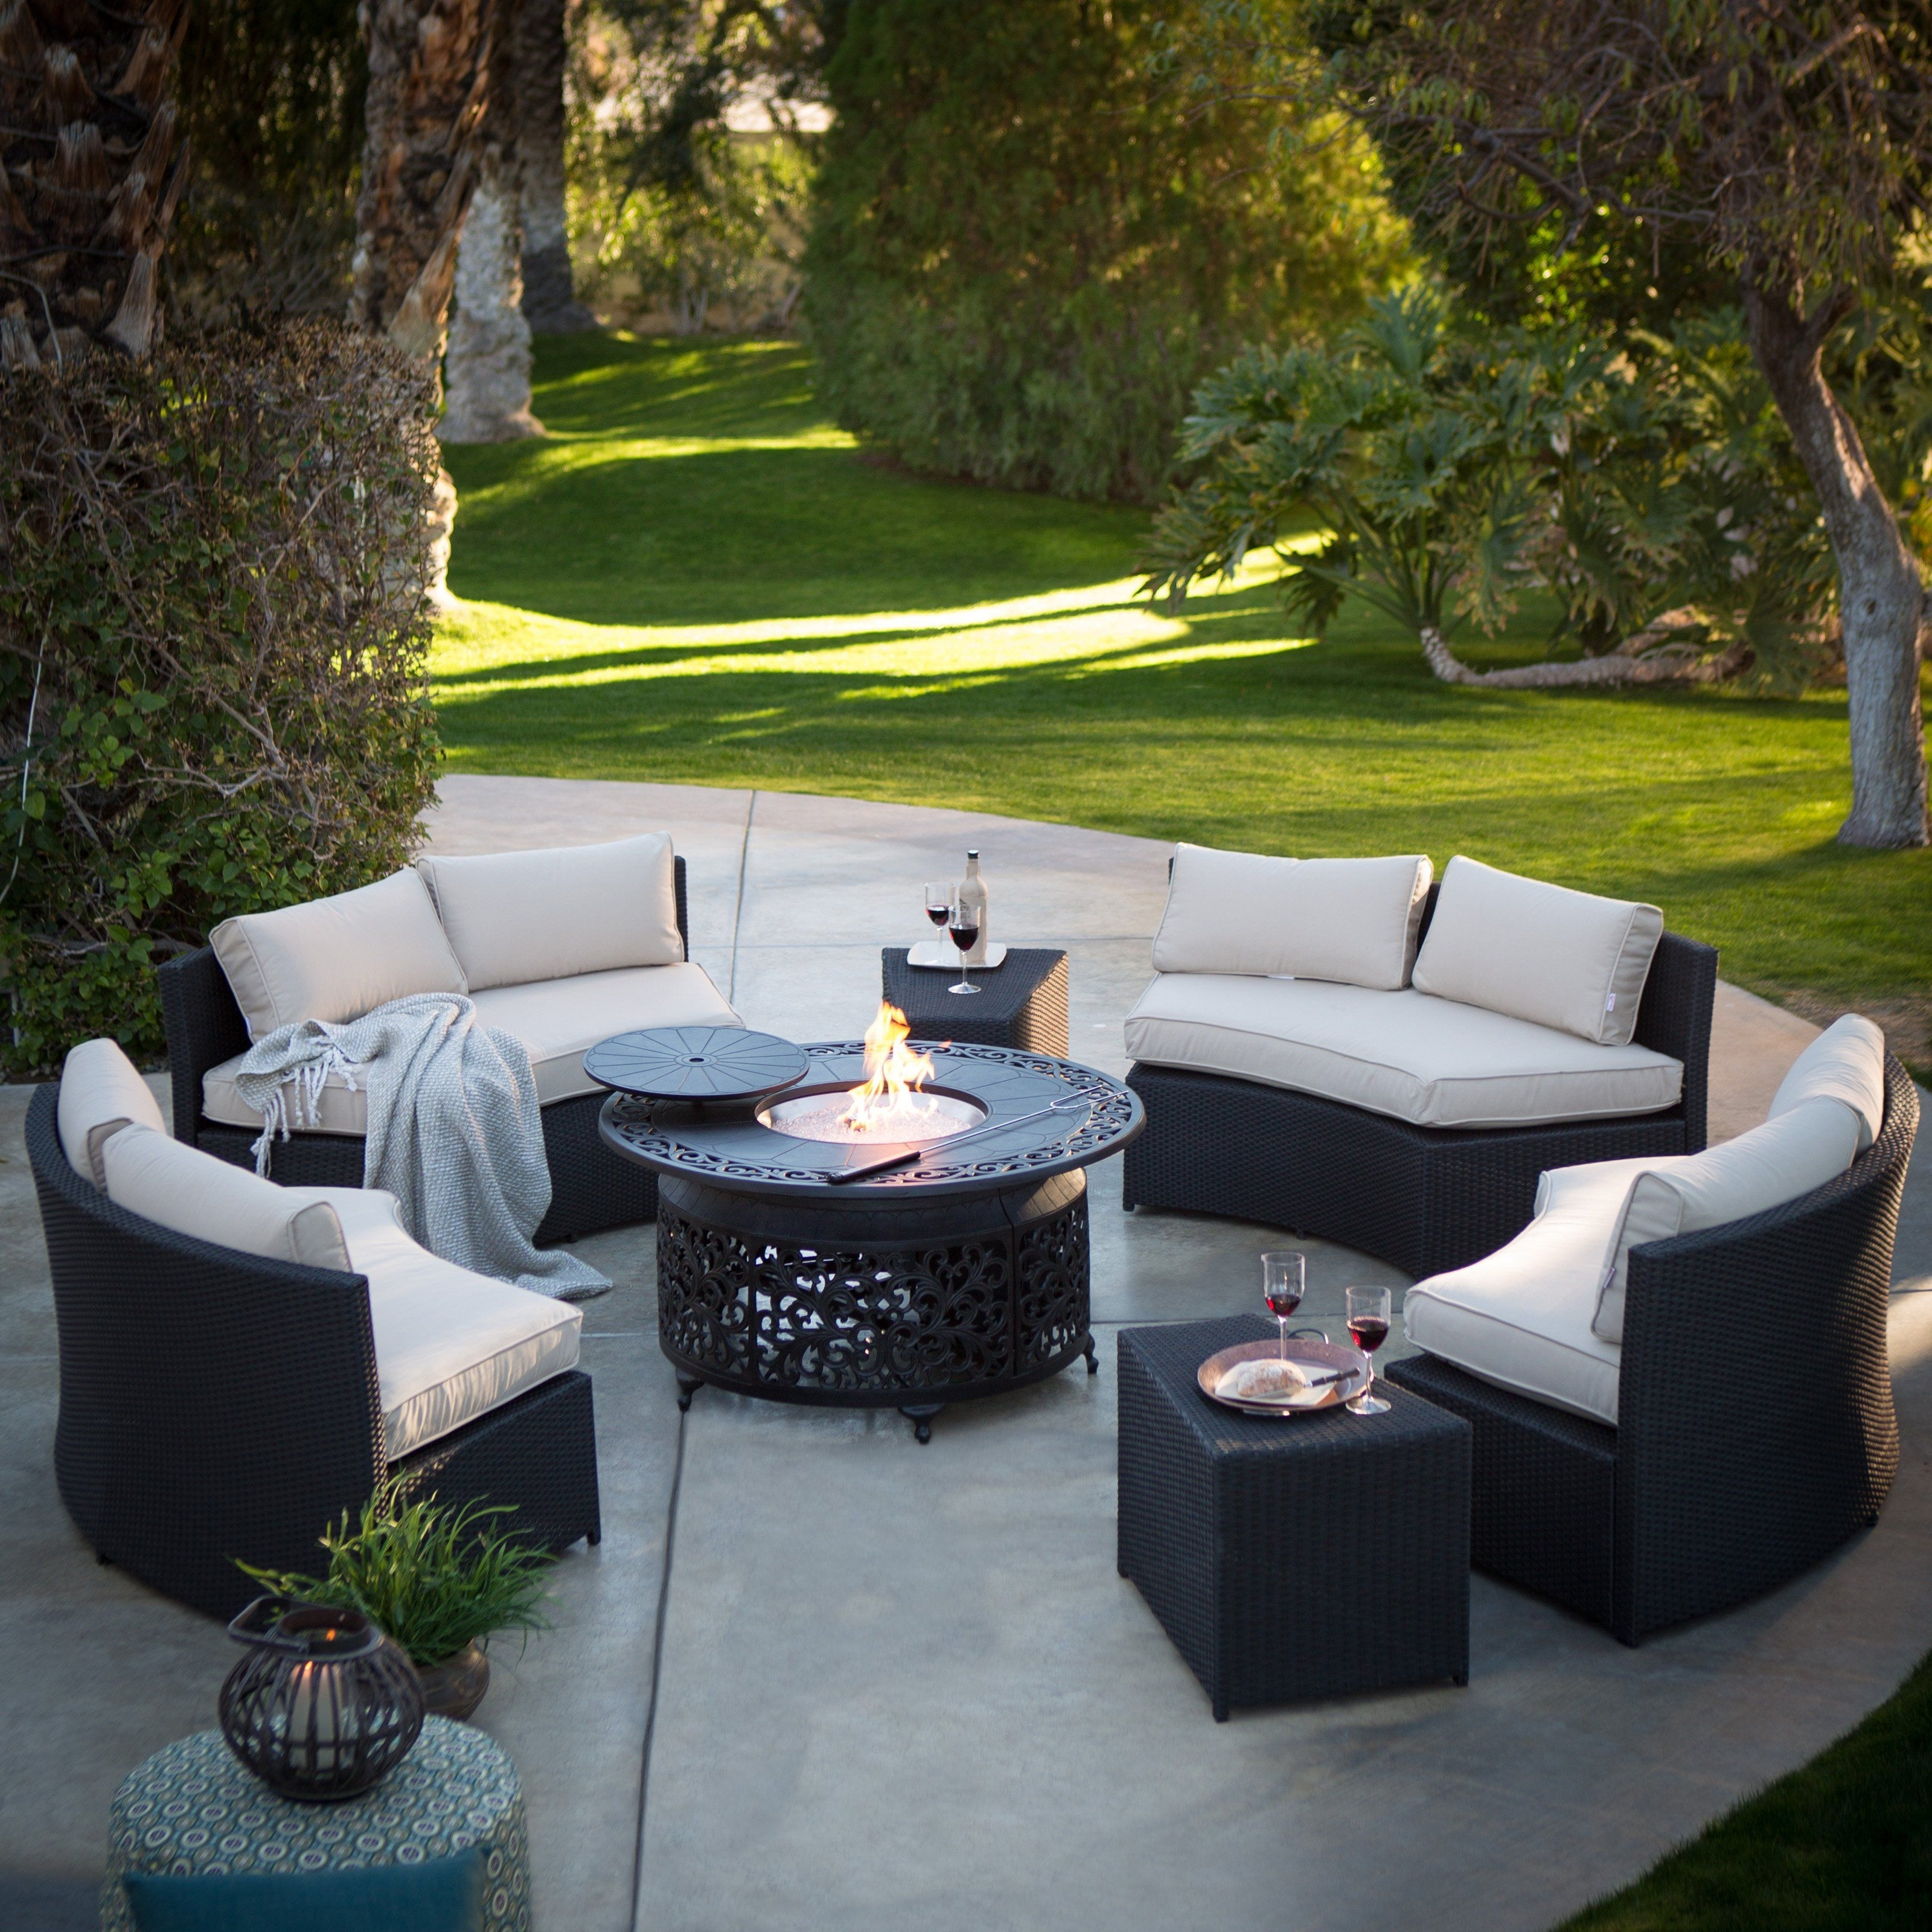 Belham Living Meridian All Weather Wicker Fire Pit Conversation Set Regarding Famous Patio Conversation Sets With Sunbrella Cushions (View 7 of 20)